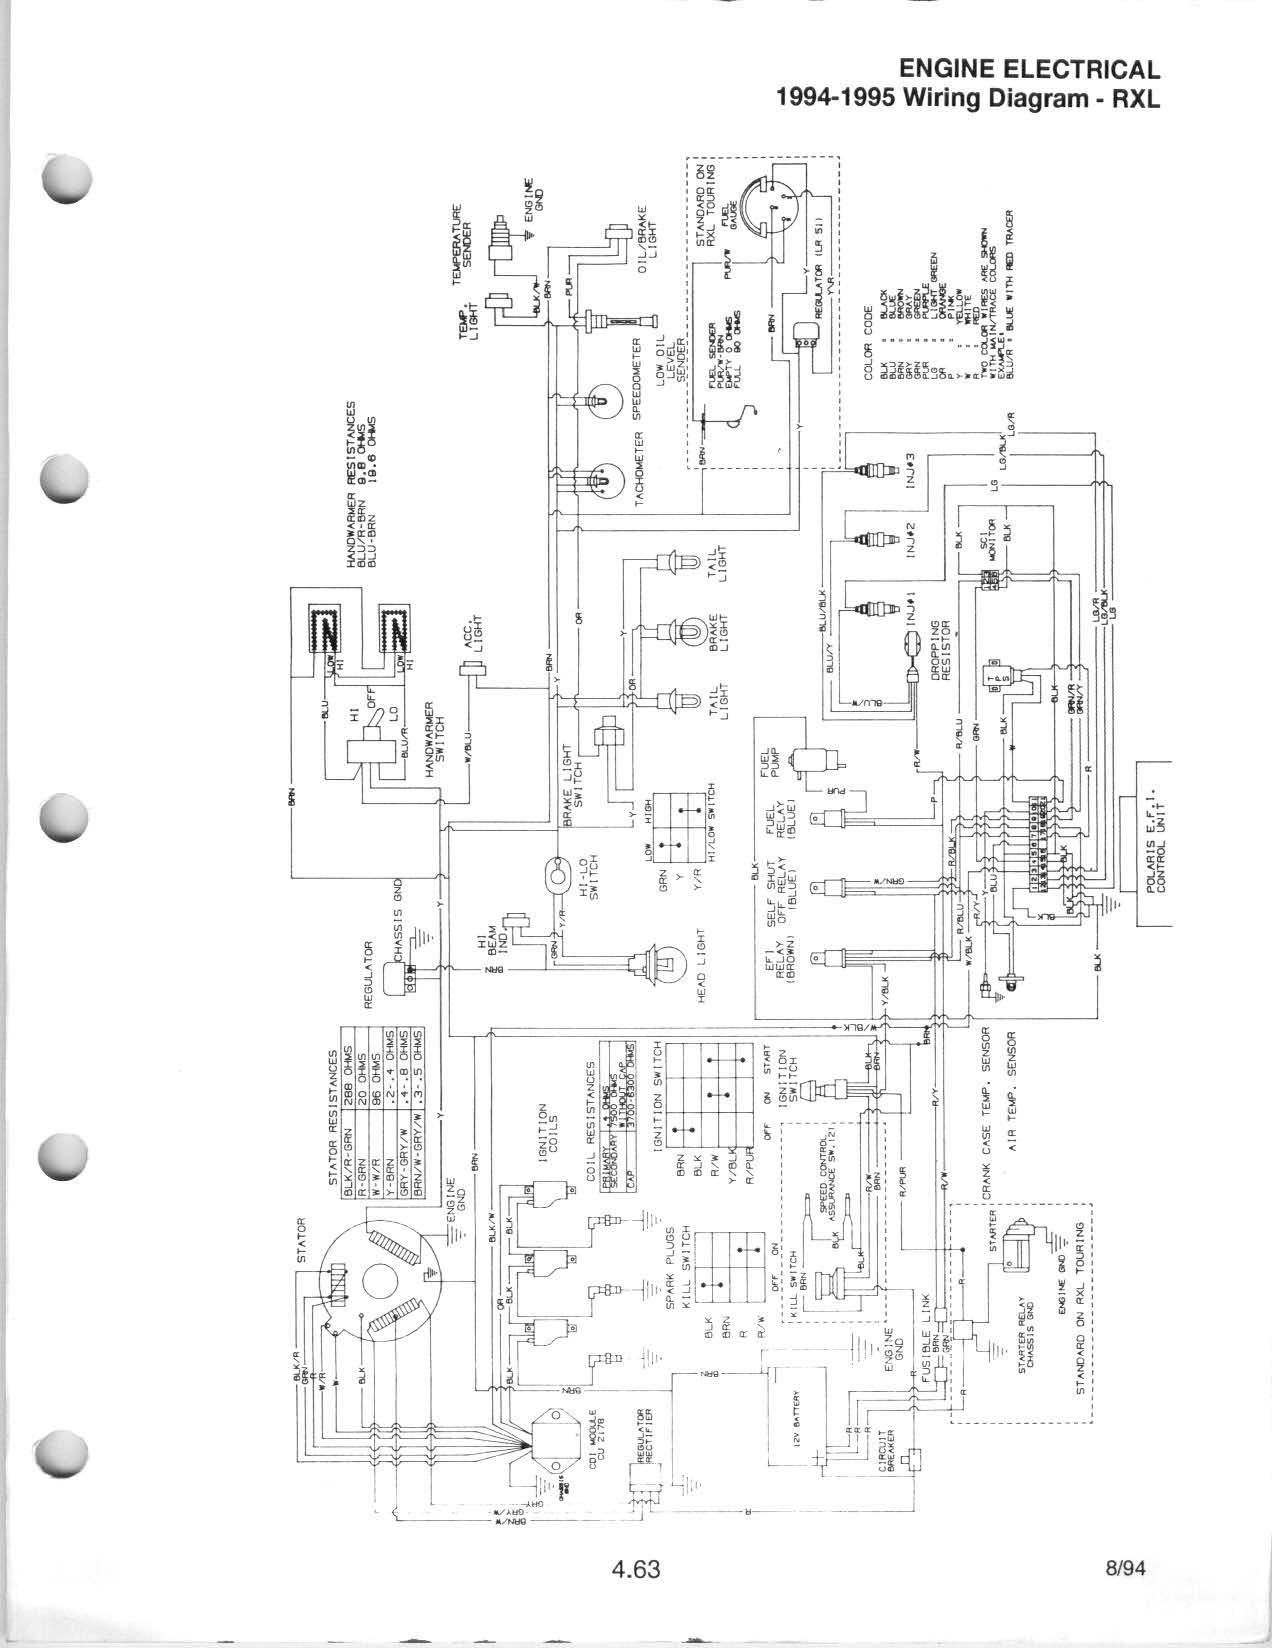 2011 arctic cat atv 700 wiring diagram